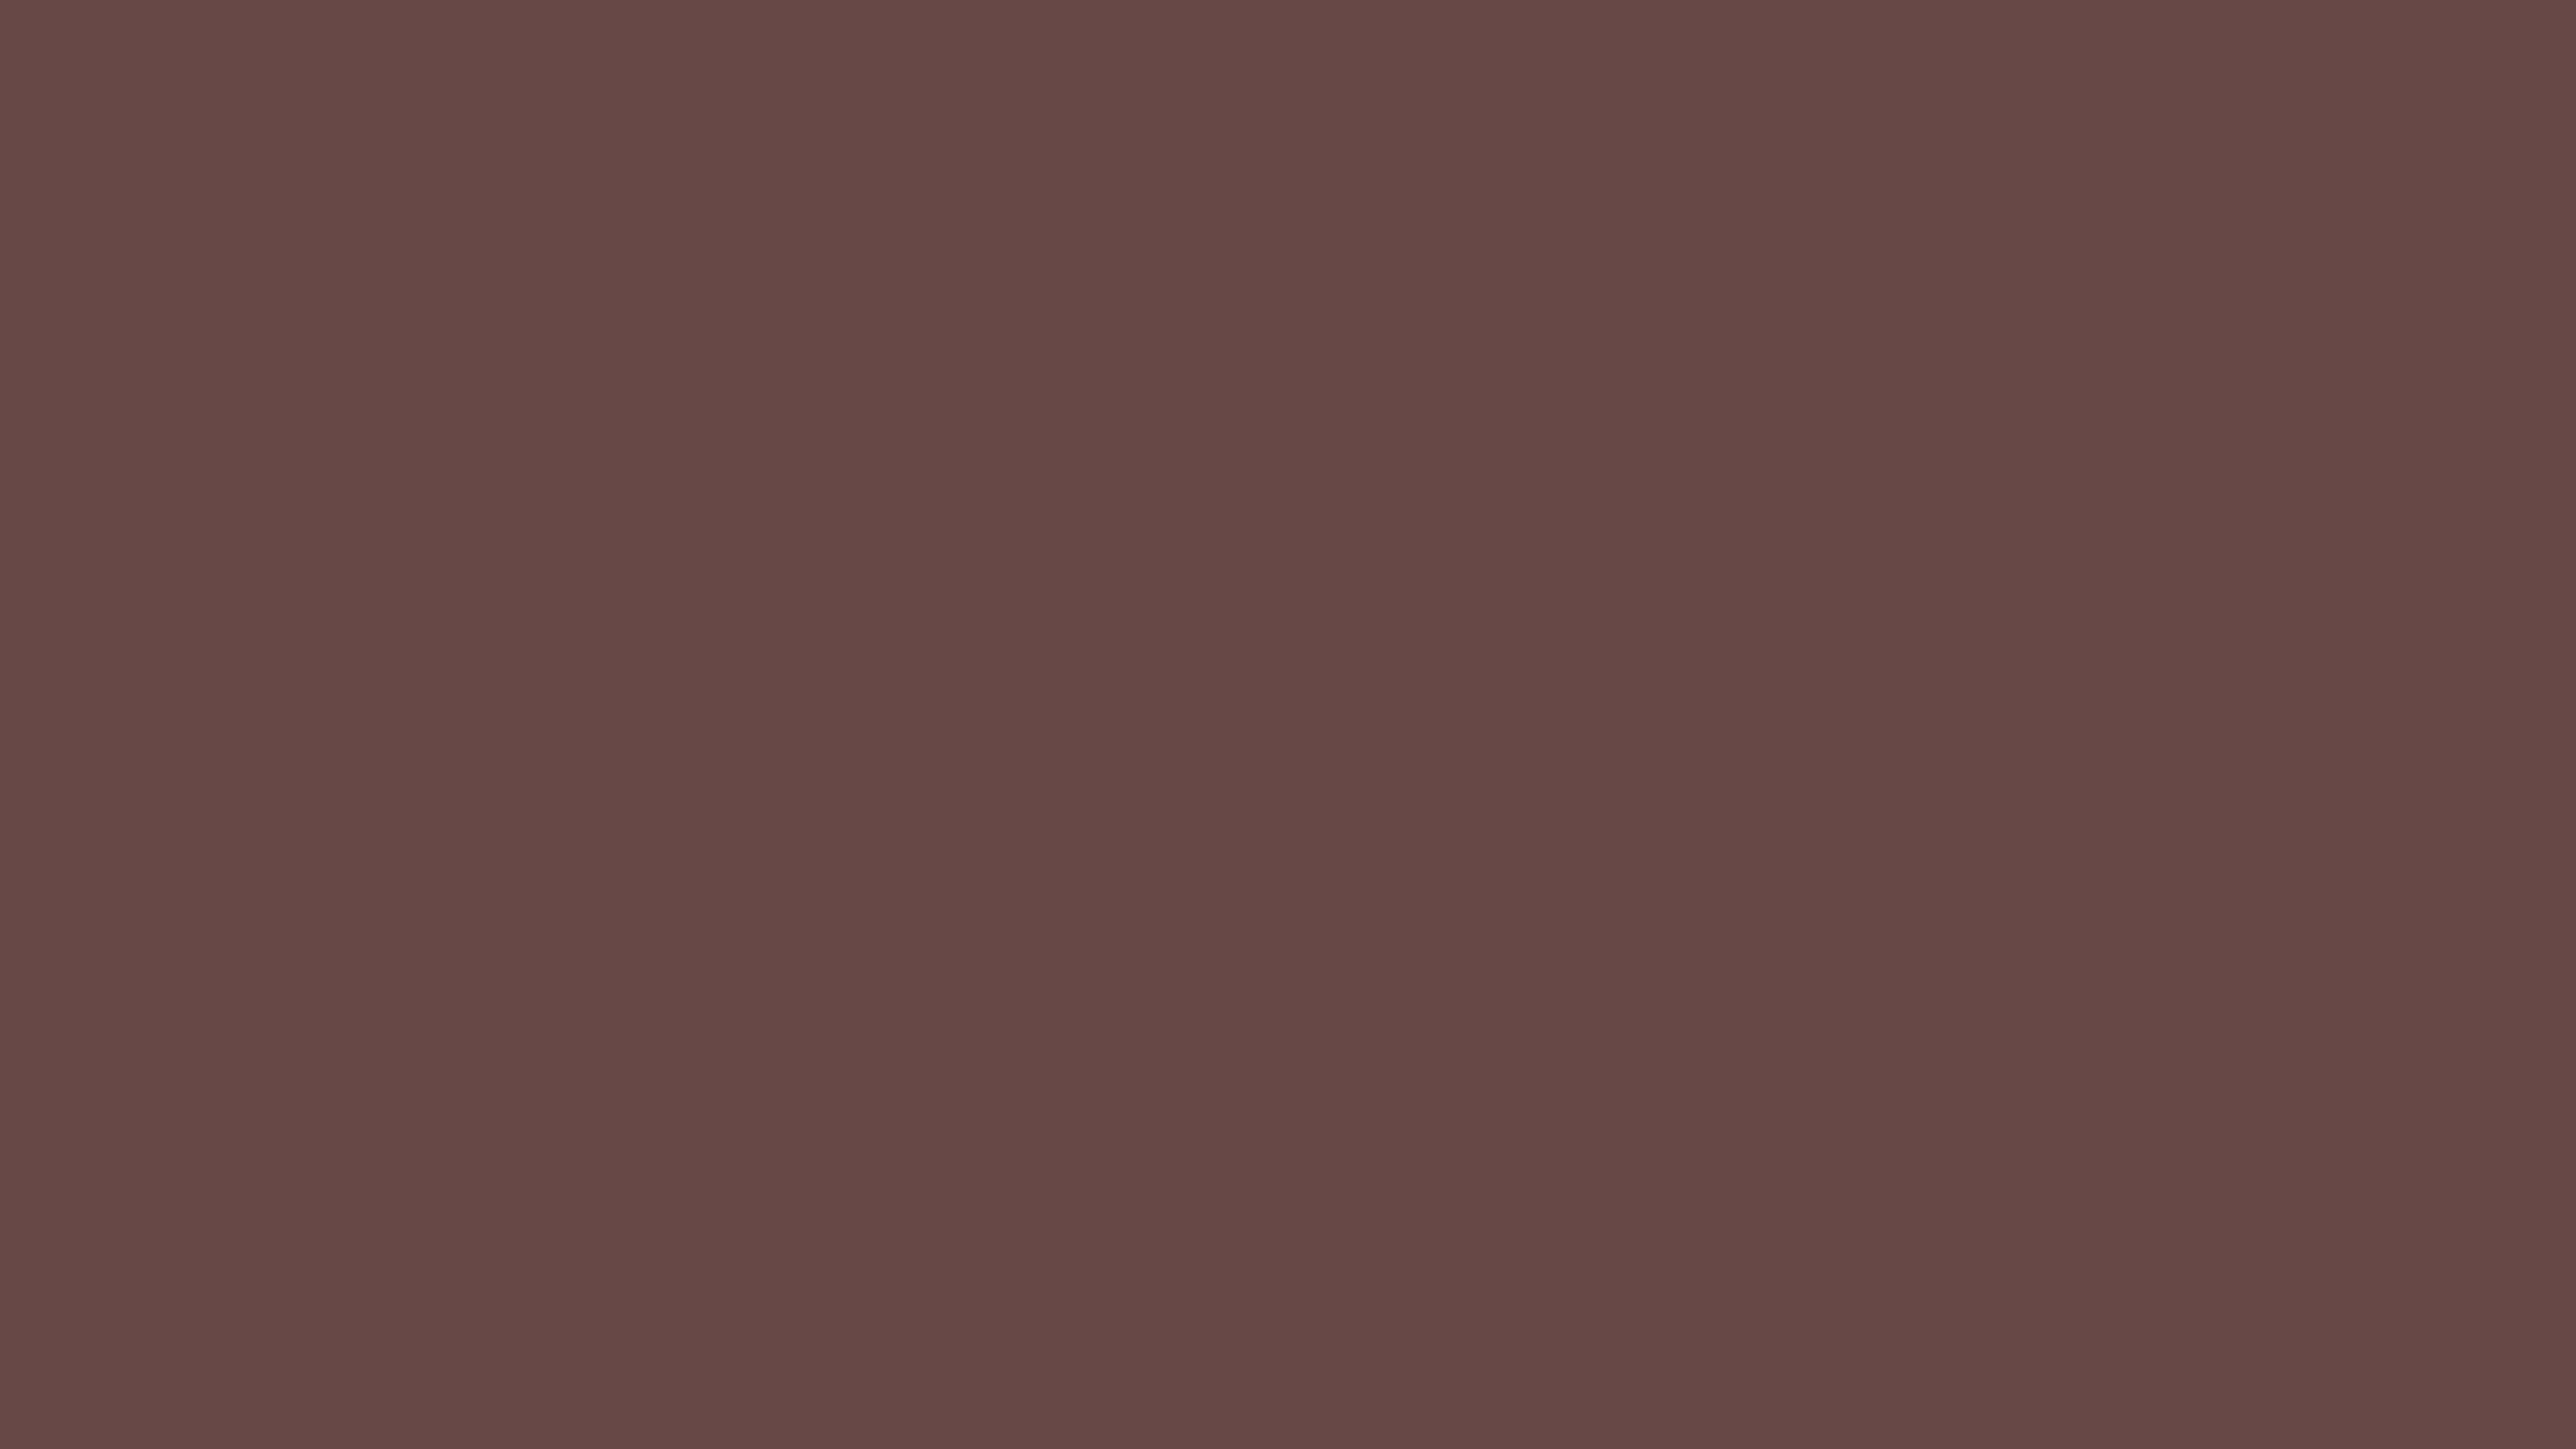 4096x2304 Rose Ebony Solid Color Background